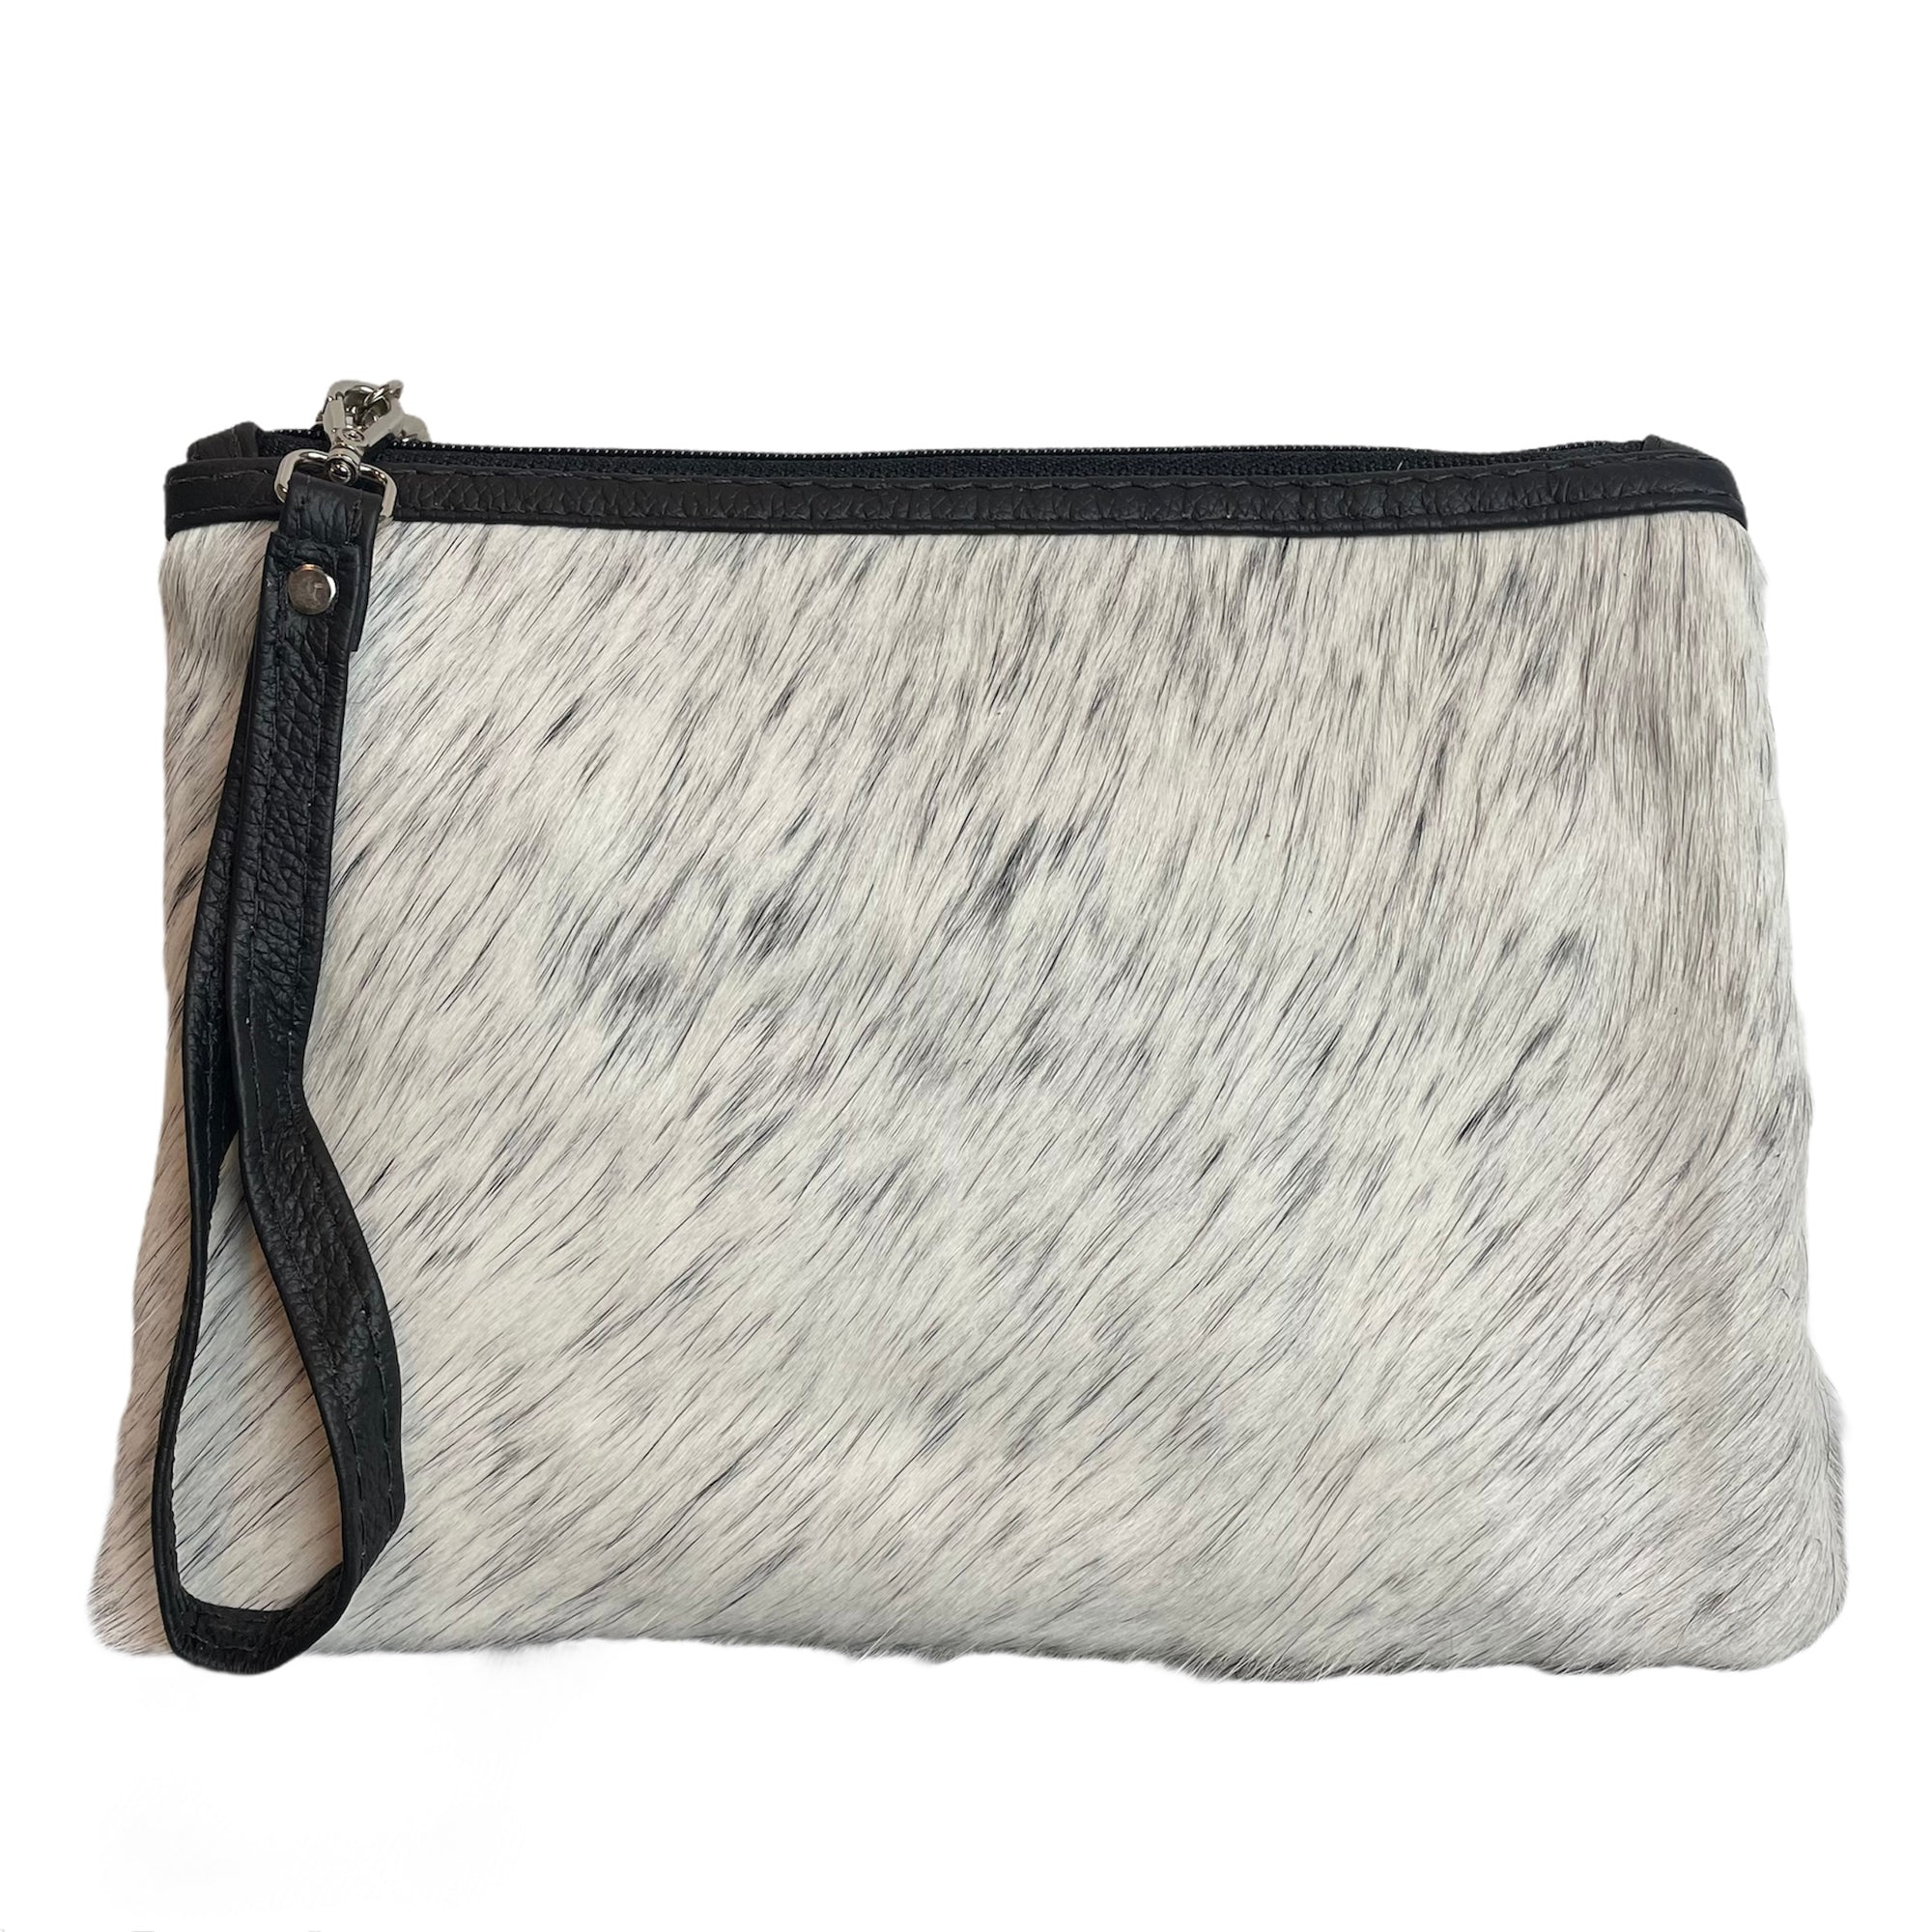 COWHIDE EVERYDAY SMALL CLUTCH - LIGHT SPECKLE. Izel Designs